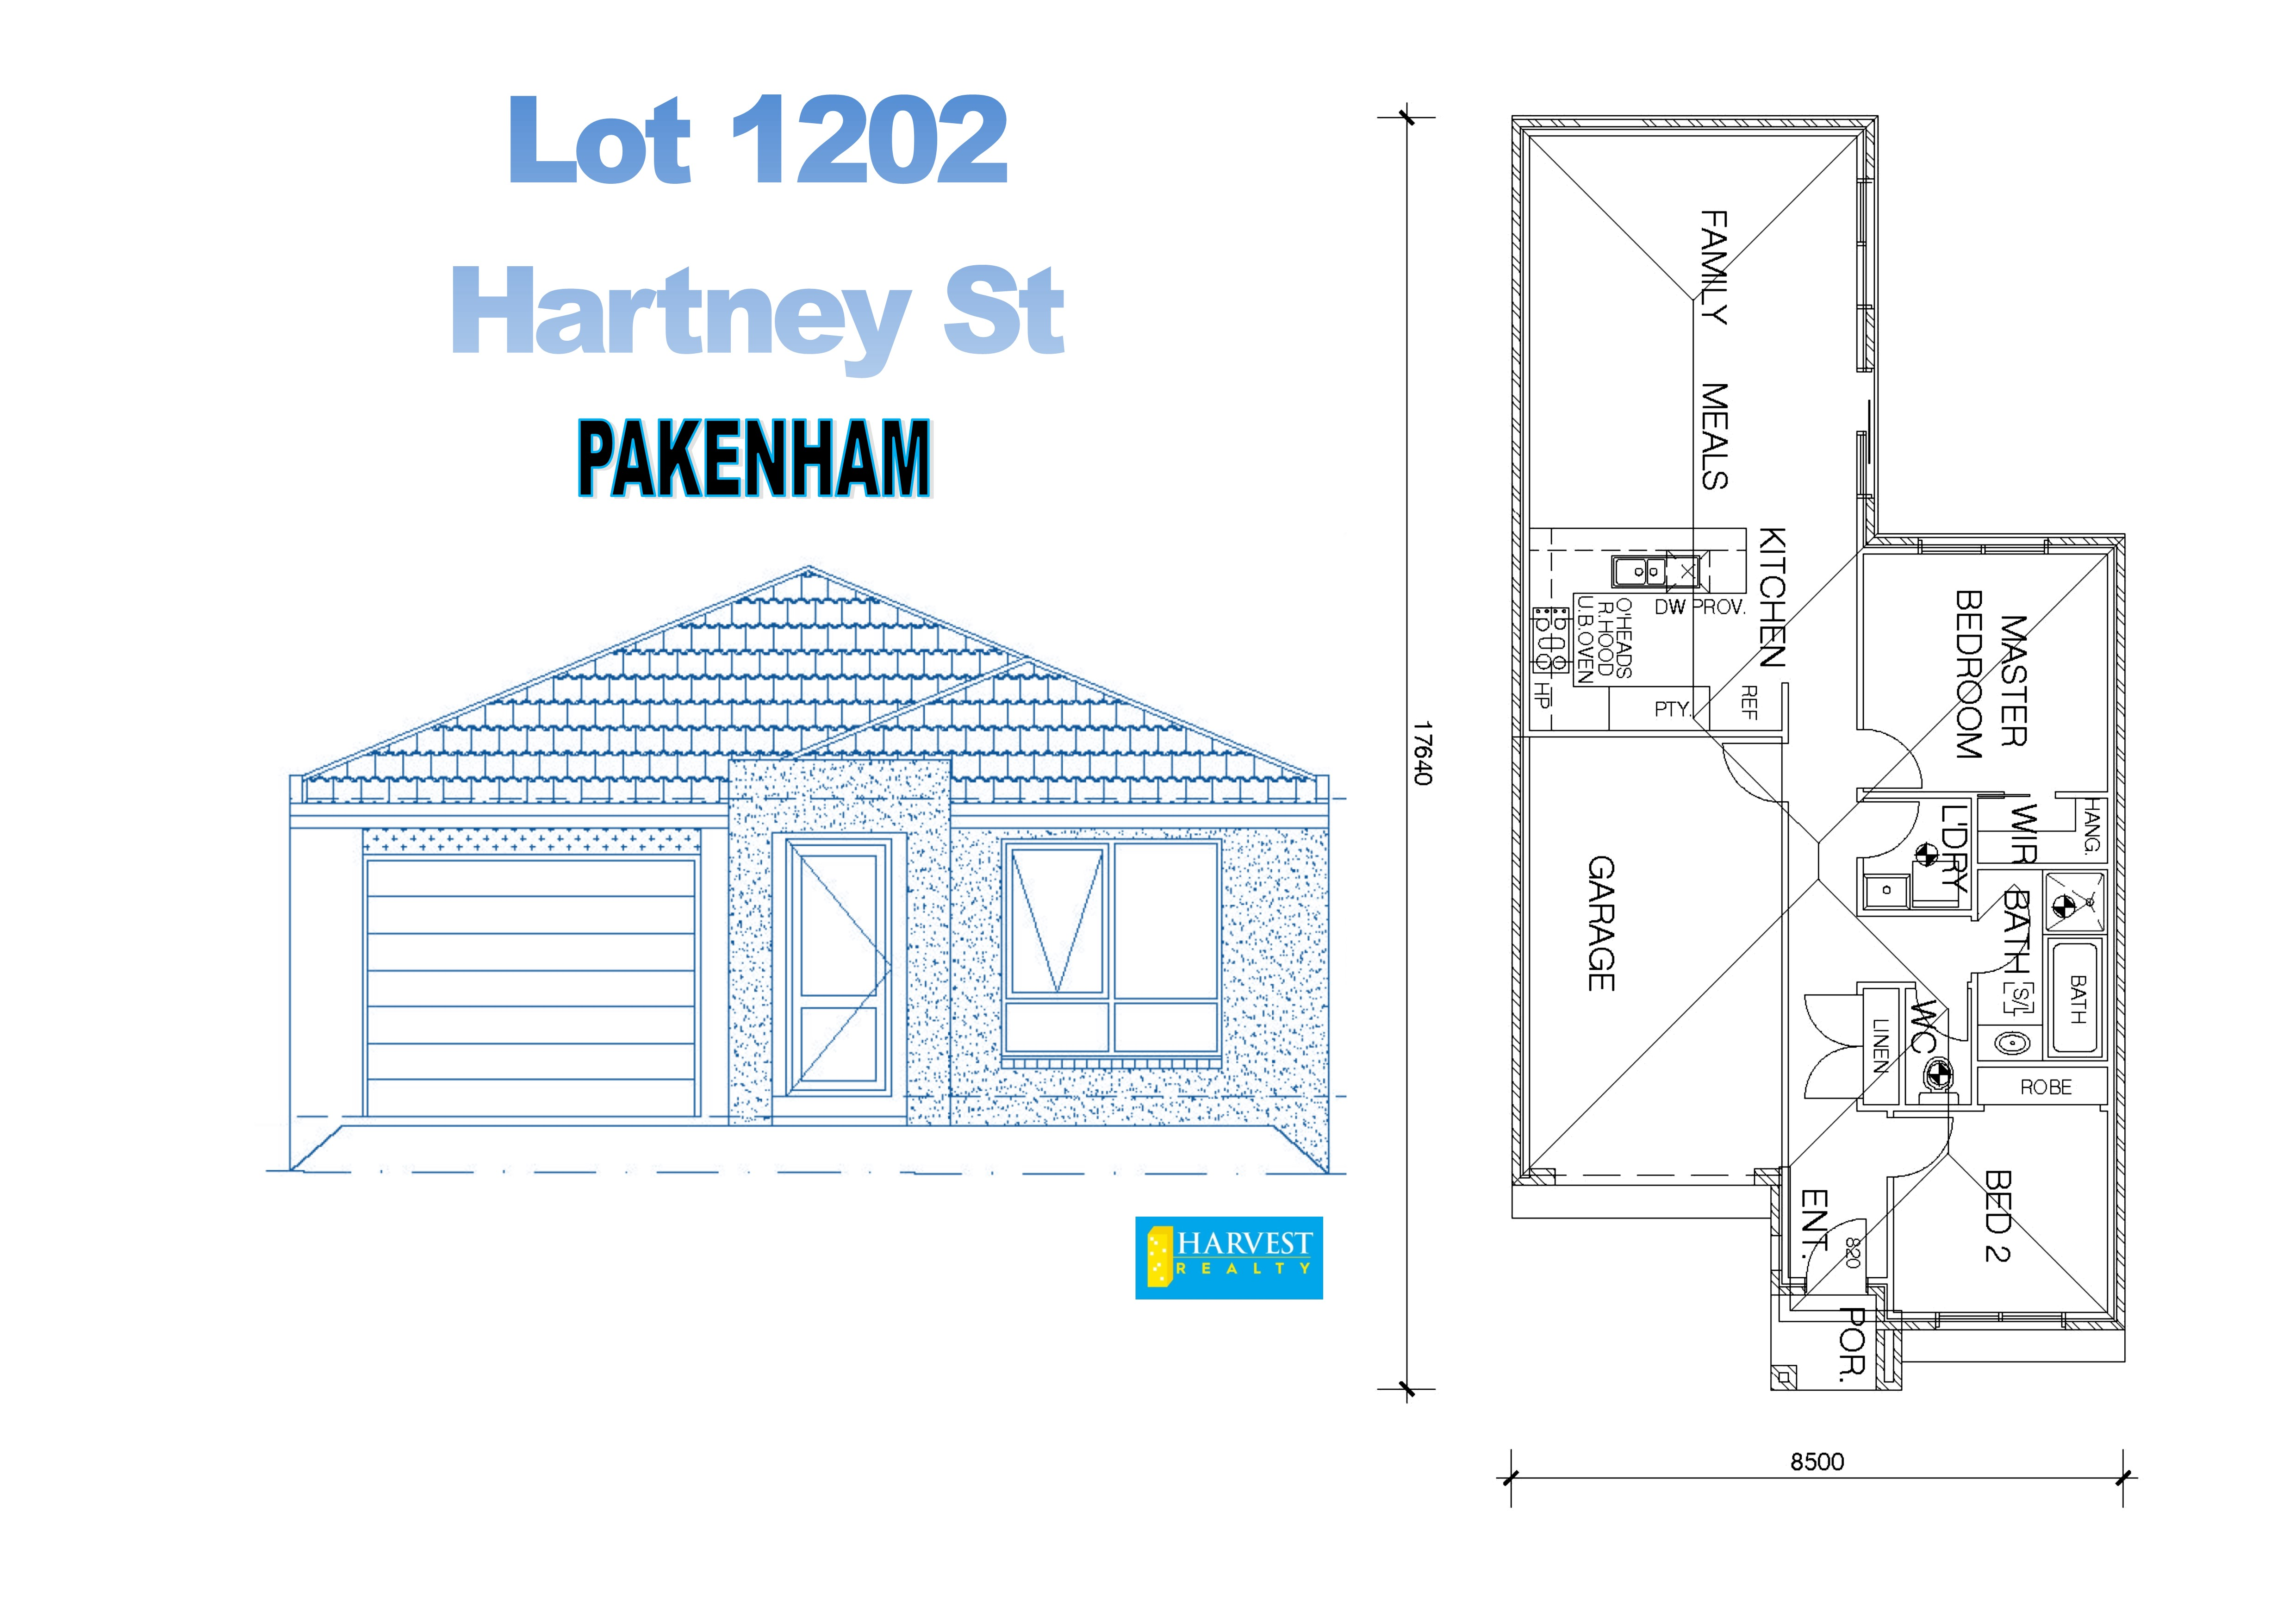 Lot 1202 Hartney St PAKENHAM